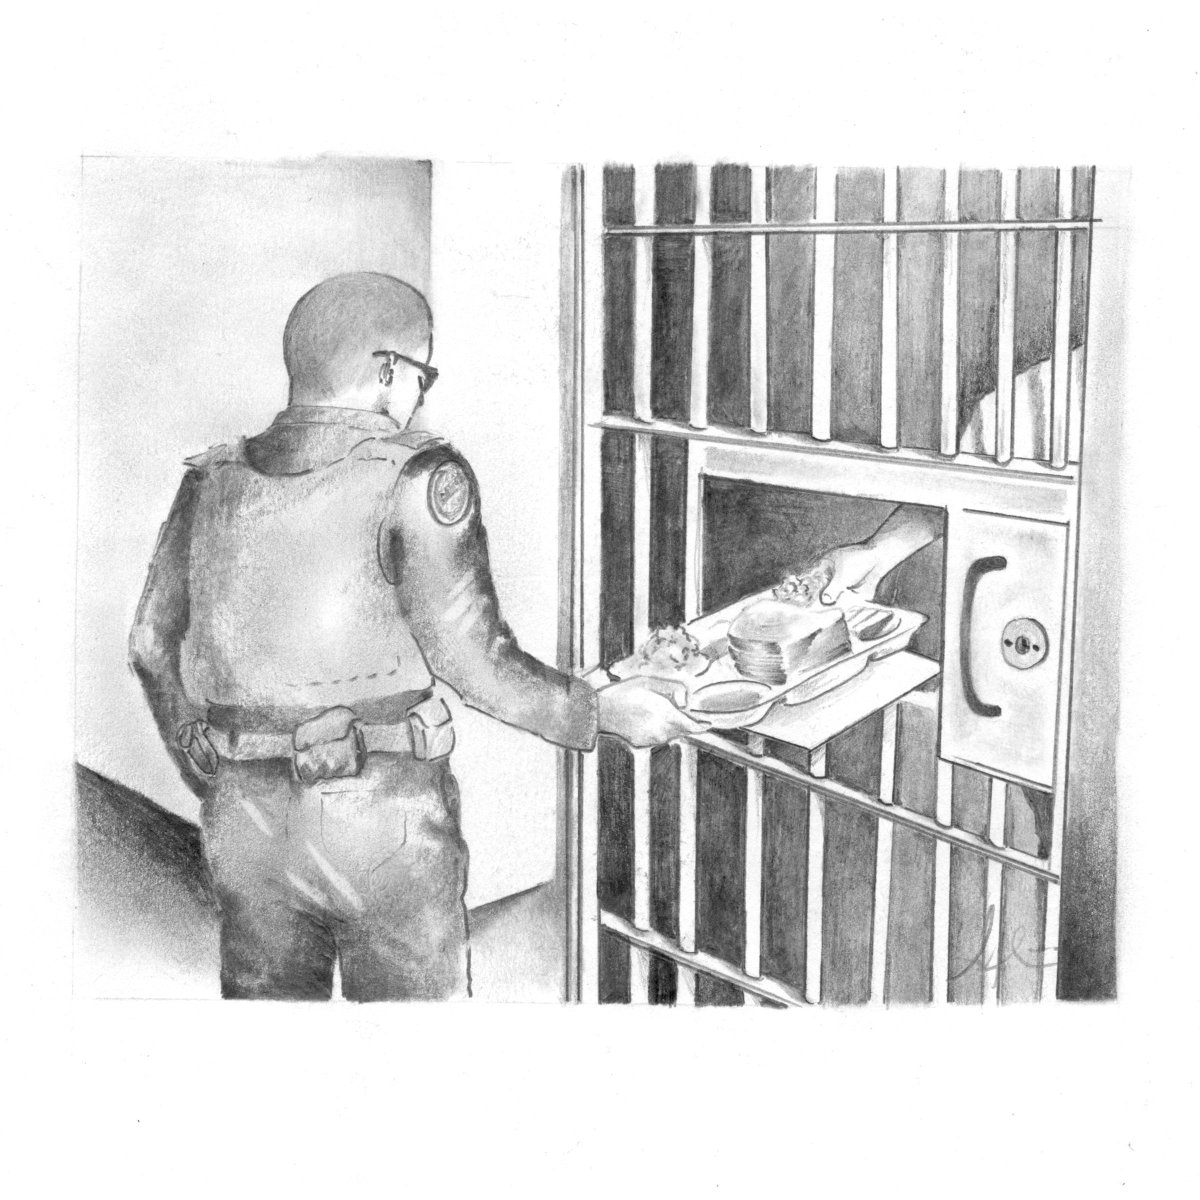 A sketch of a prison guard passing a tray of food through a locked cell door 7d8644ddf1